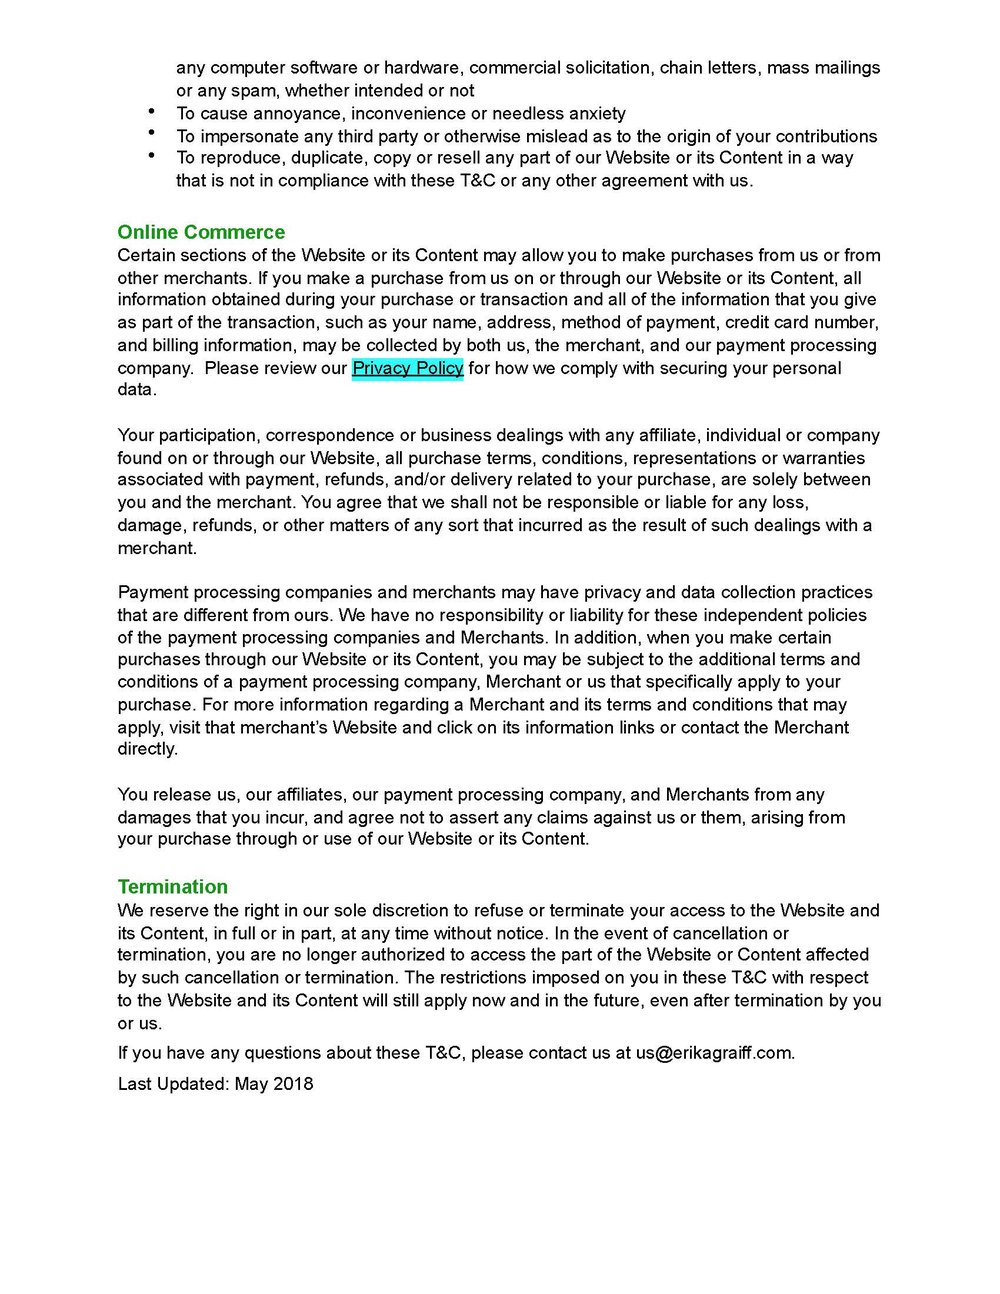 DIY Website Terms and Conditions 2_Page_7.png